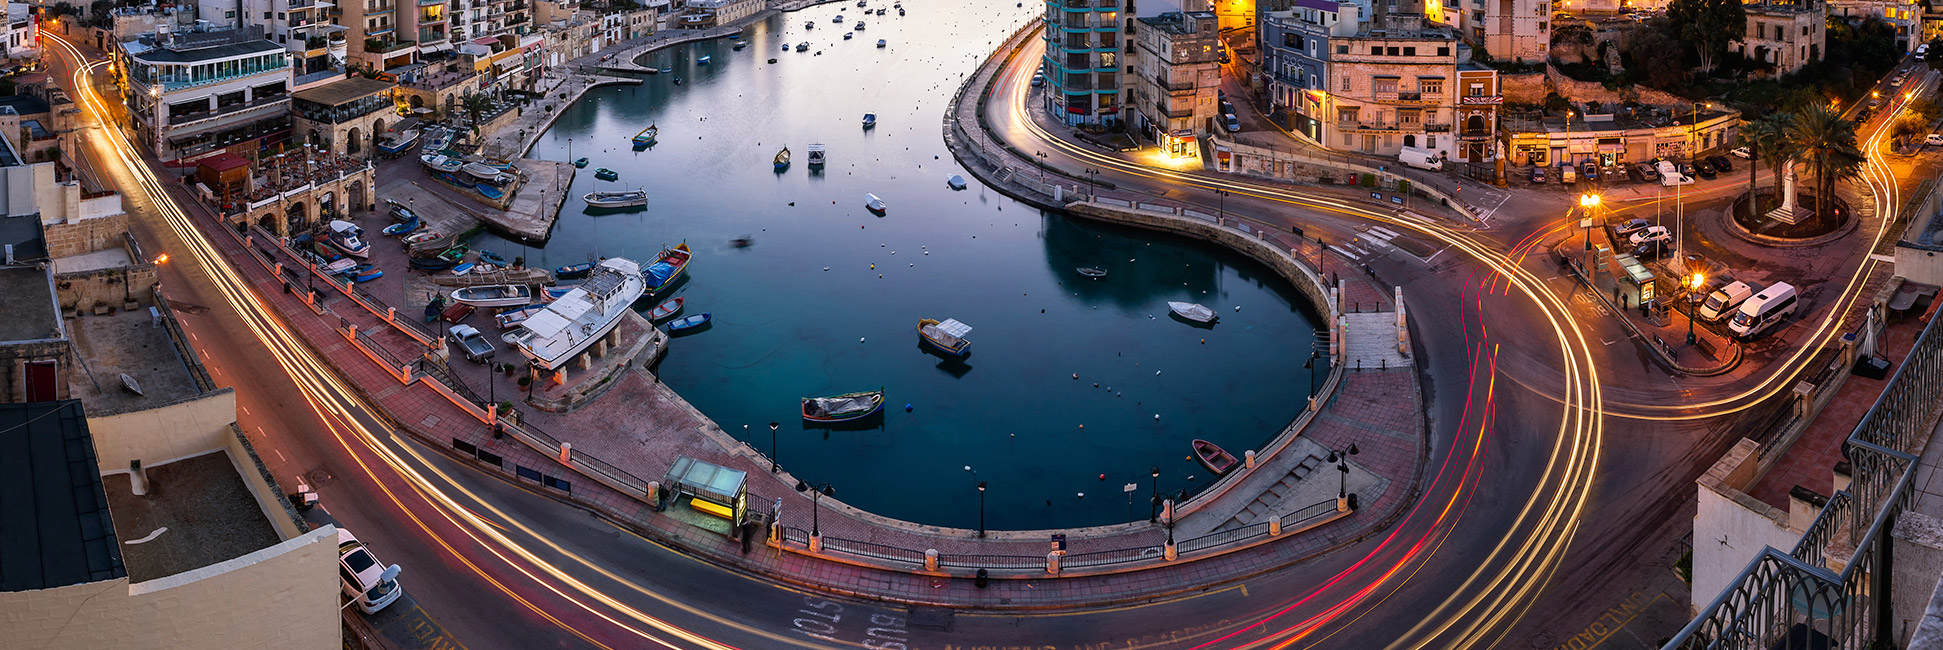 Aerial-View-on-Saint-Julien-and-Spinola-Bay-at-Dawn-000057443548_XXXLarge